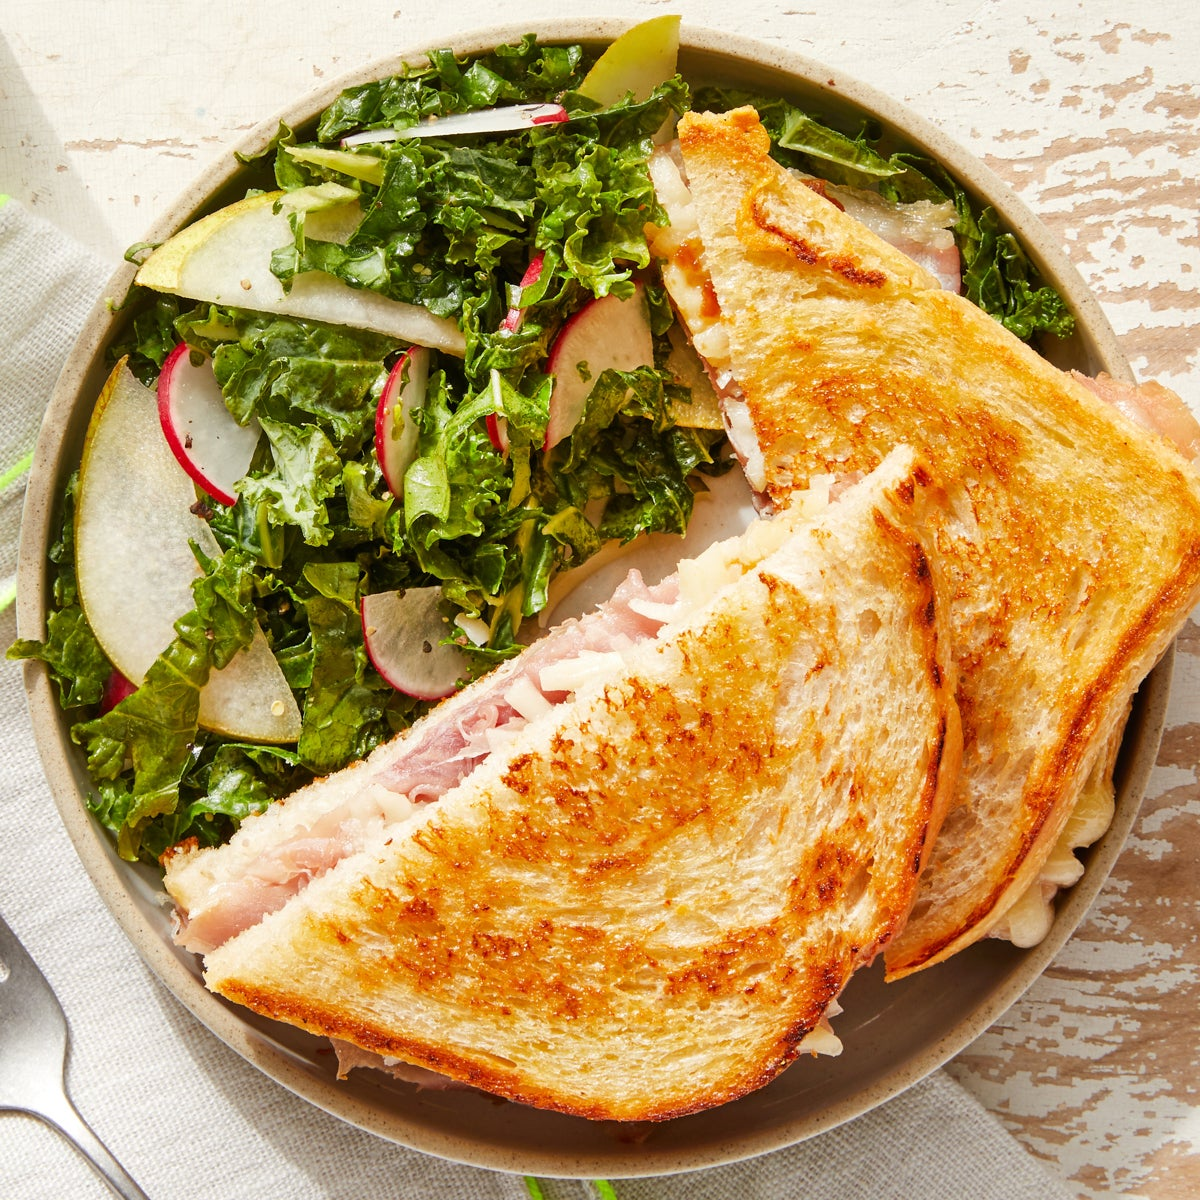 Prosciutto & Fontina Grilled Cheese with Kale Salad